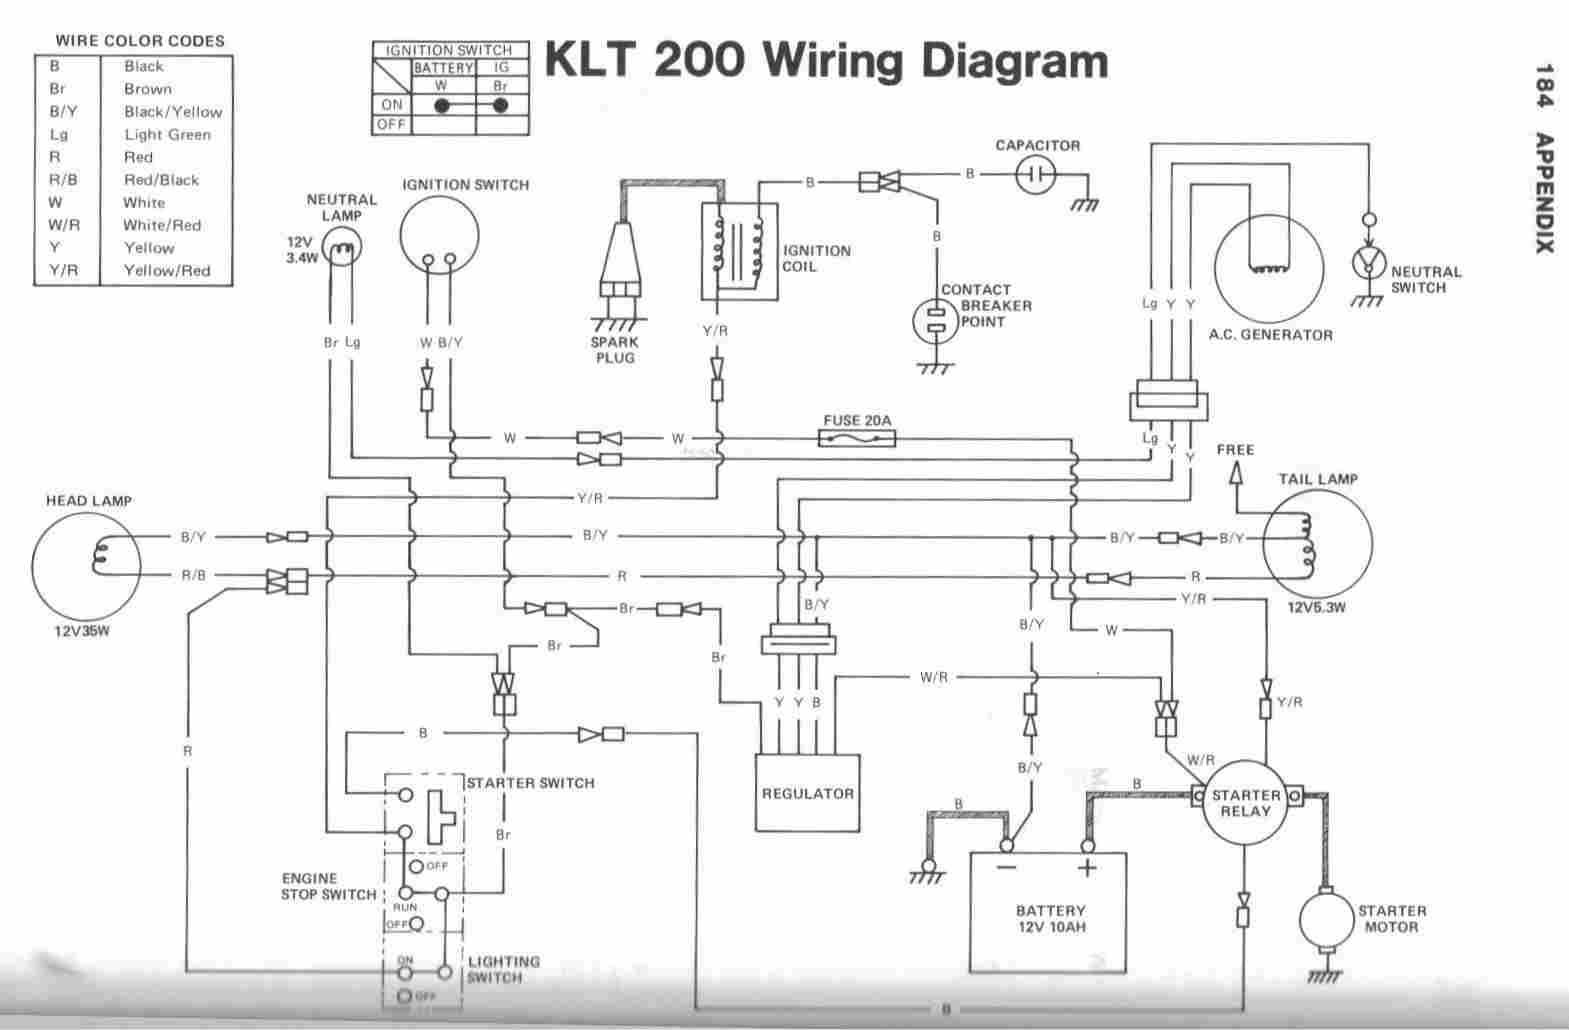 Residential Electrical Wiring Diagrams Pdf Easy Routing A C Home